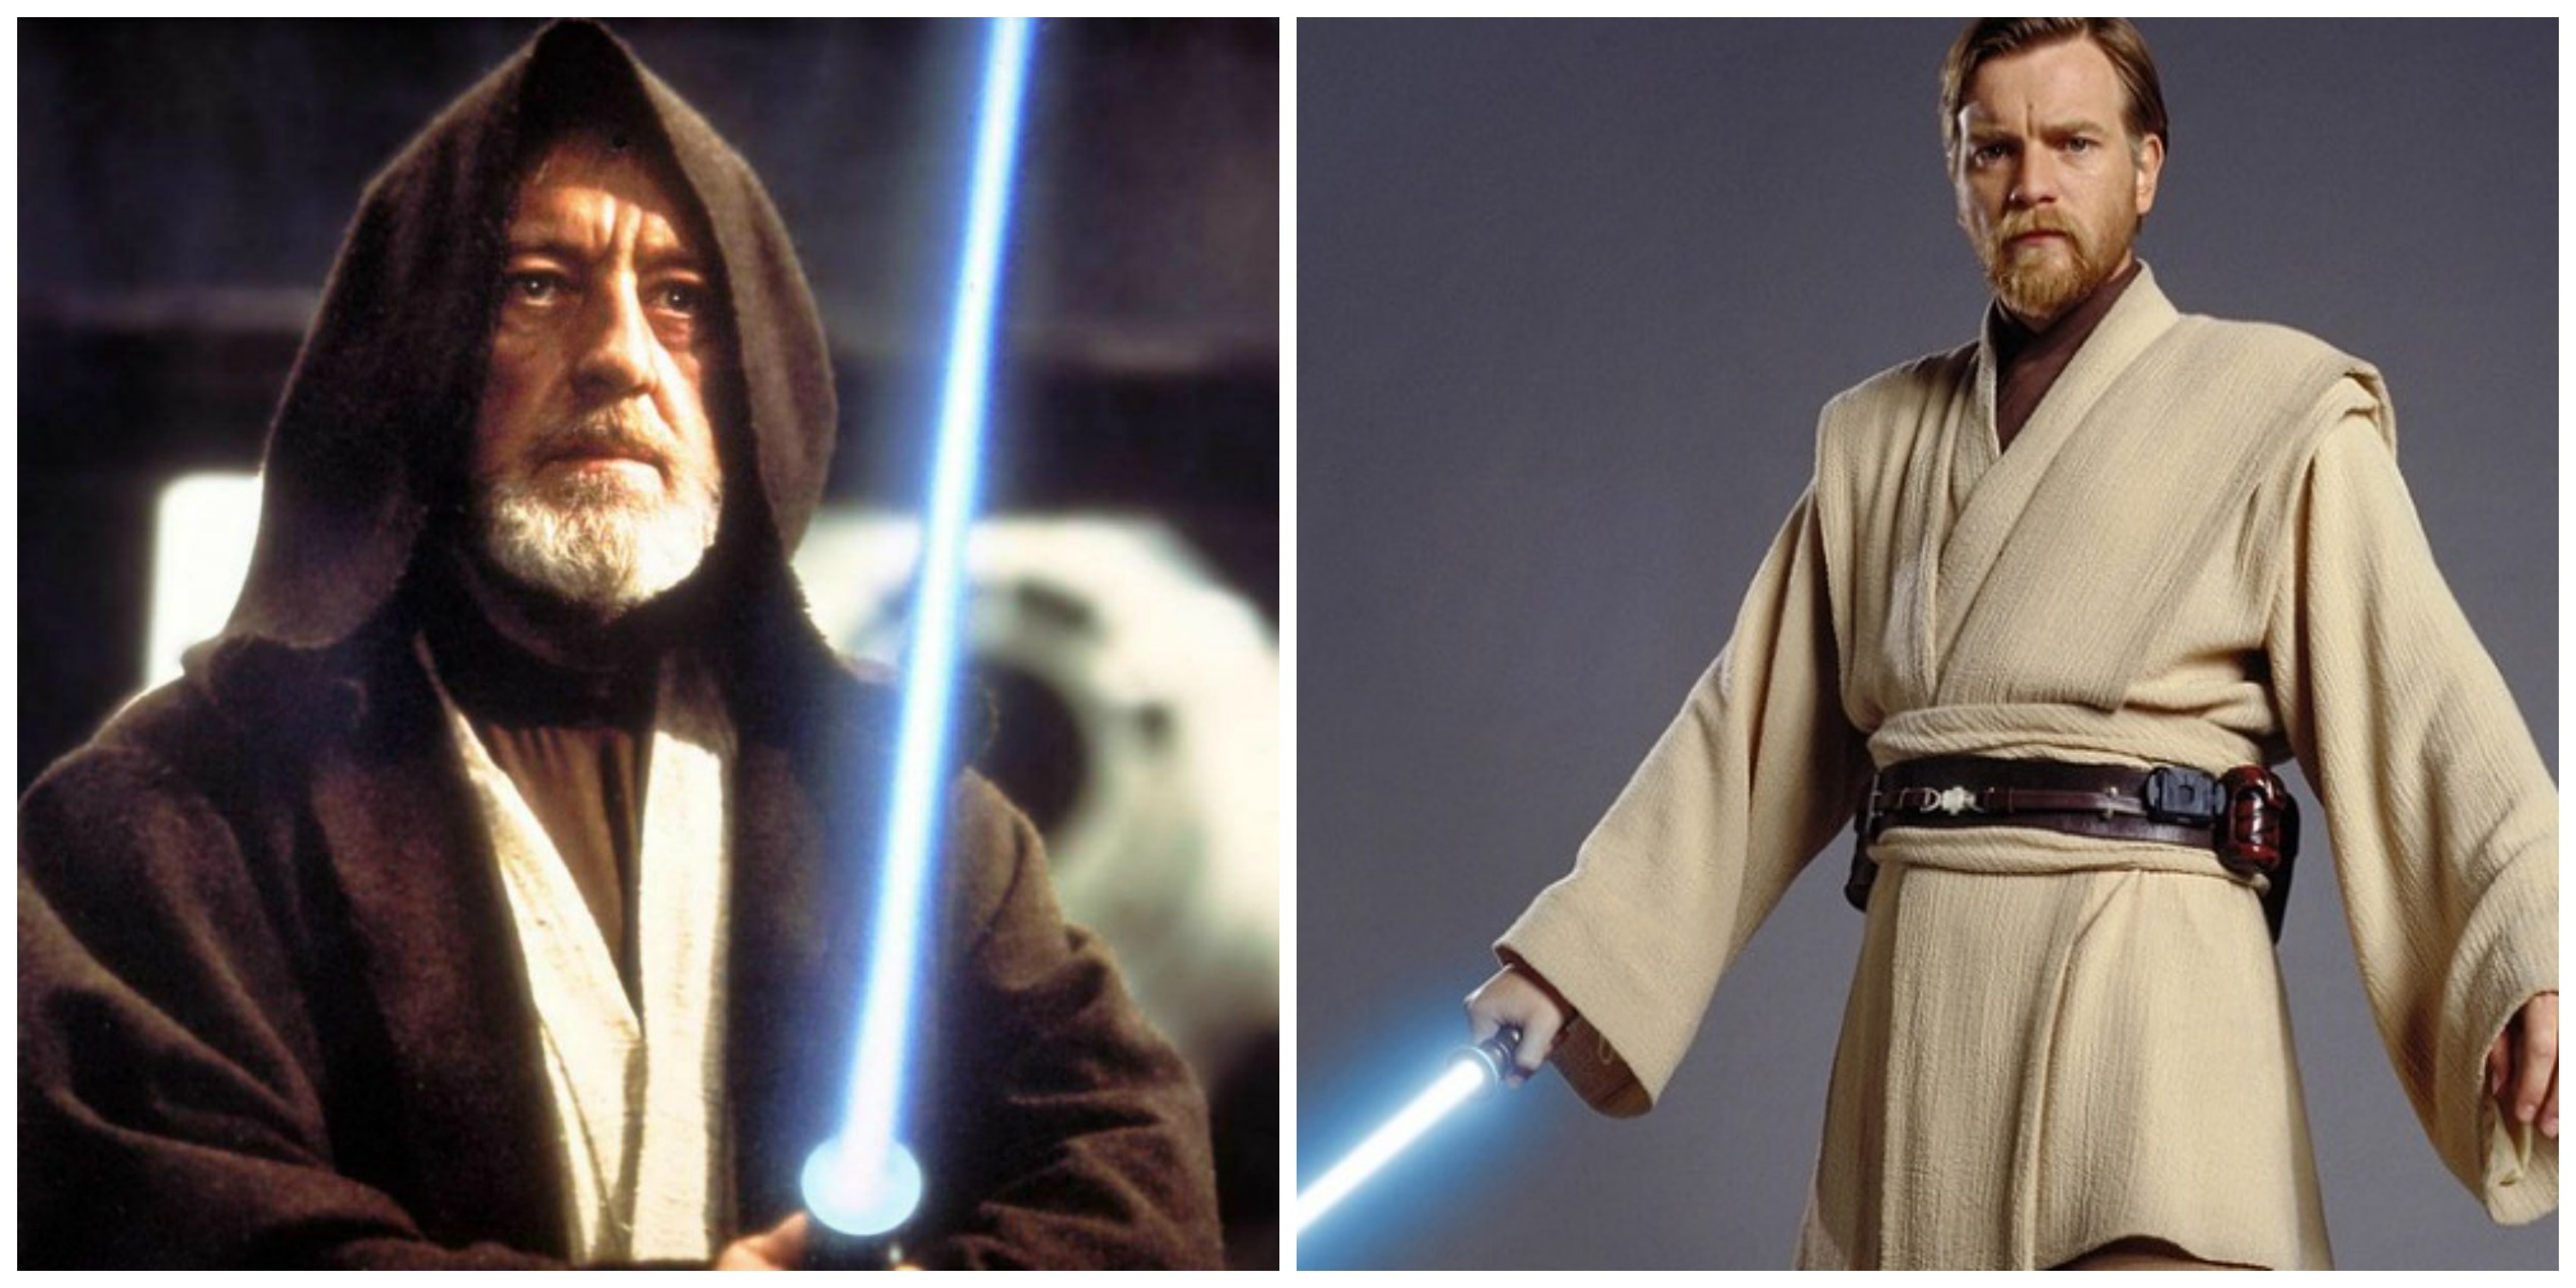 Obi-Wan Kenobi film set to join Star Wars universe